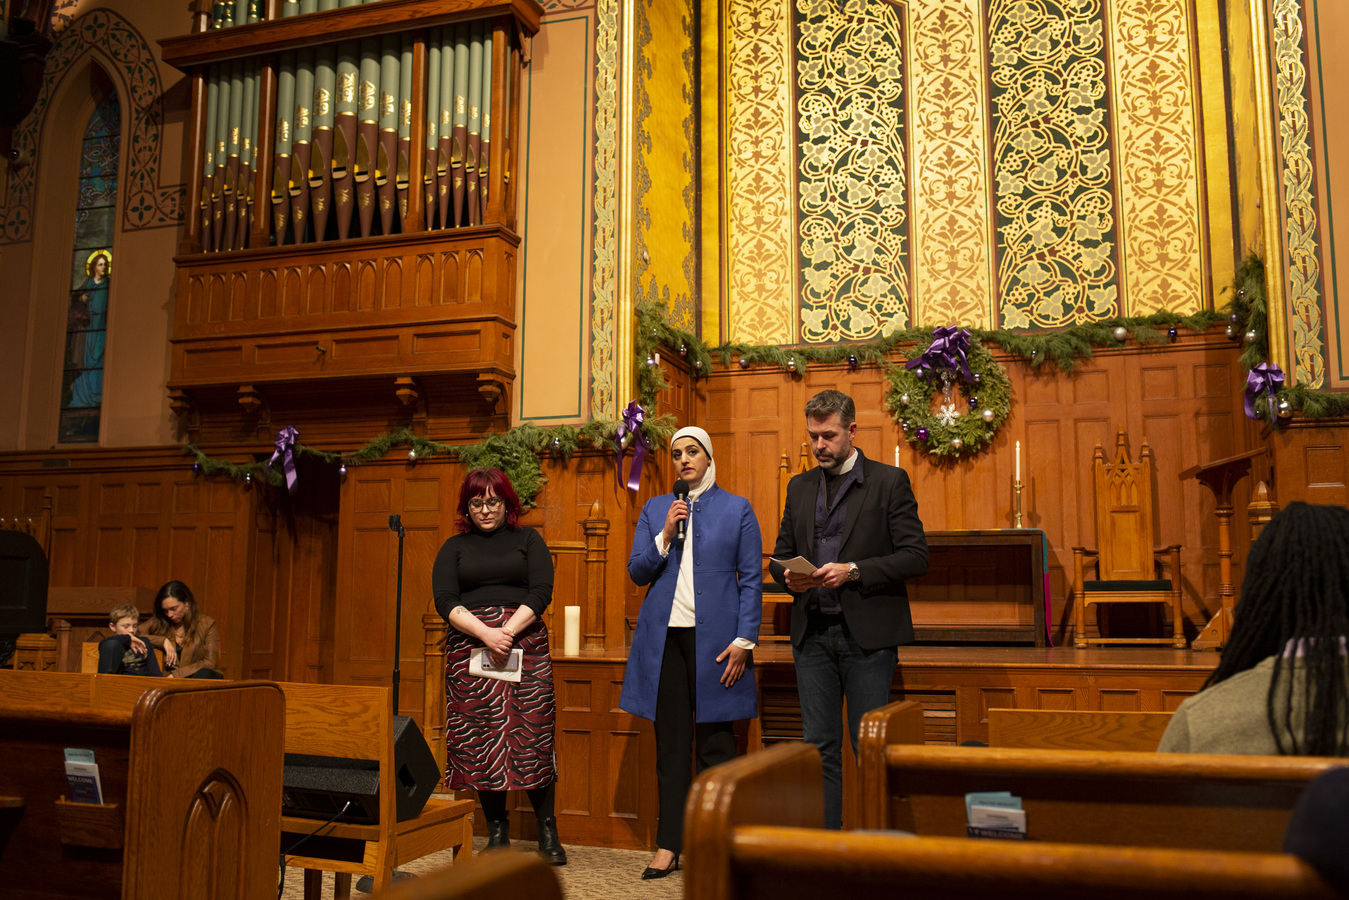 Say No To War Interfaith Peace Vigil Middle Collegiate Church 1/7/20 Interfaith Prayers for Peace Madge Dietrich,Tahanie Aboushi & Will Critzman, Sr. Pastor West End Colliegiate Church